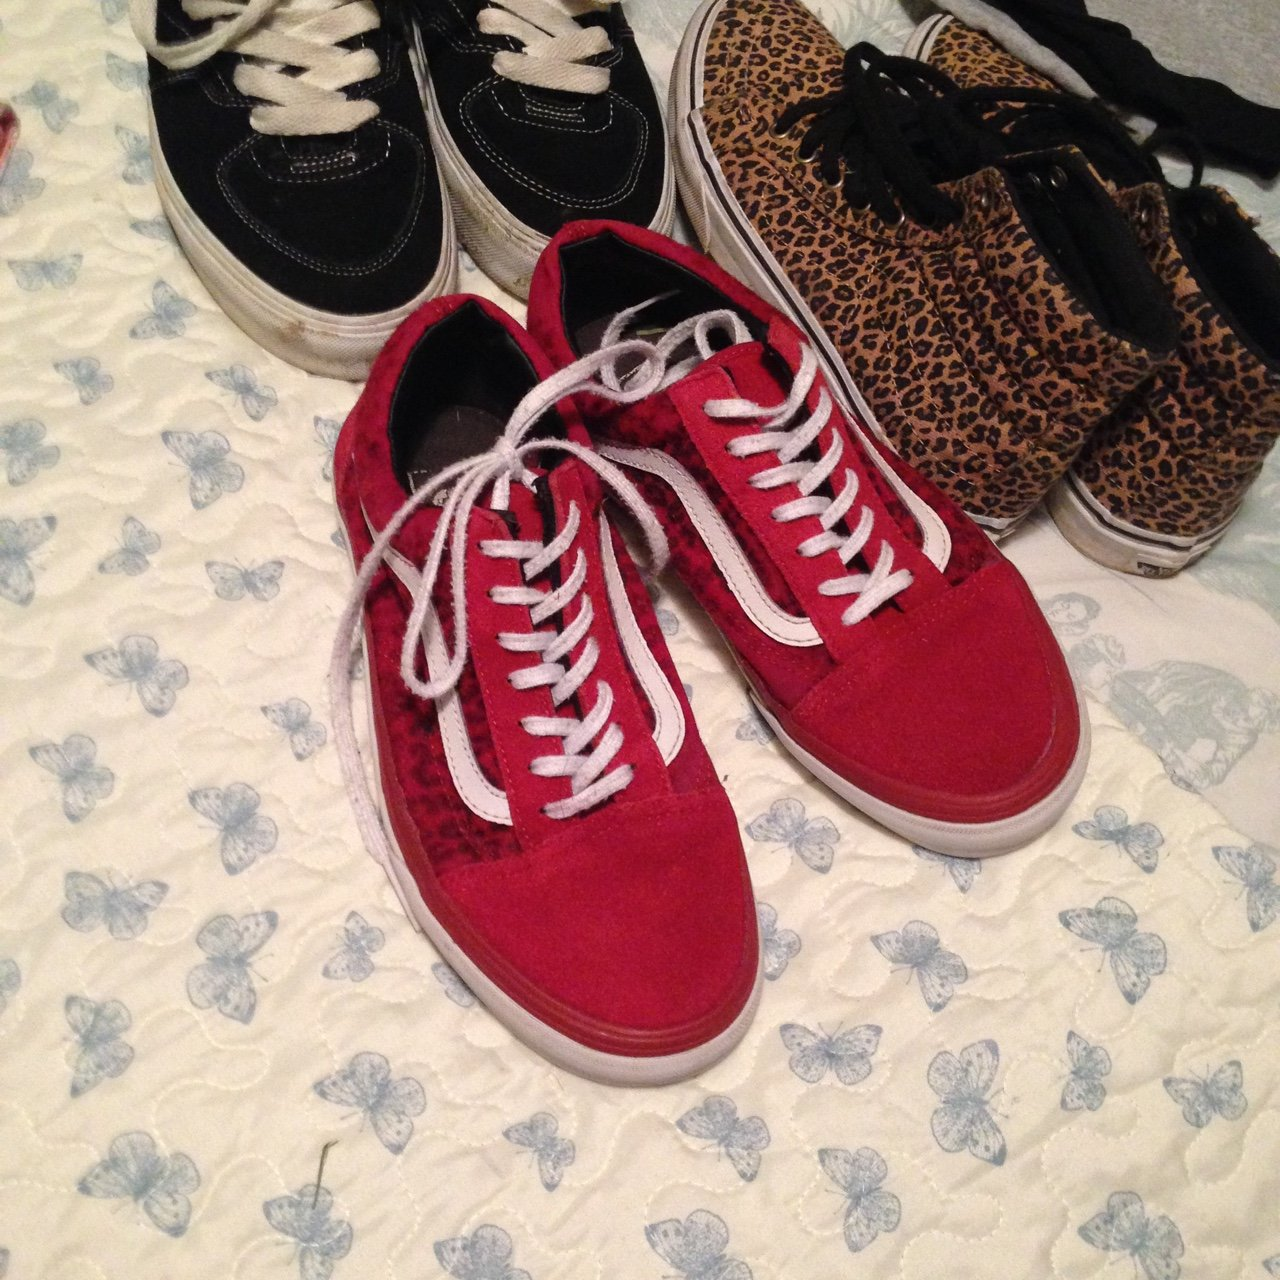 Size 5 red leopard print old skool vans good condition just - Depop 29a880e86